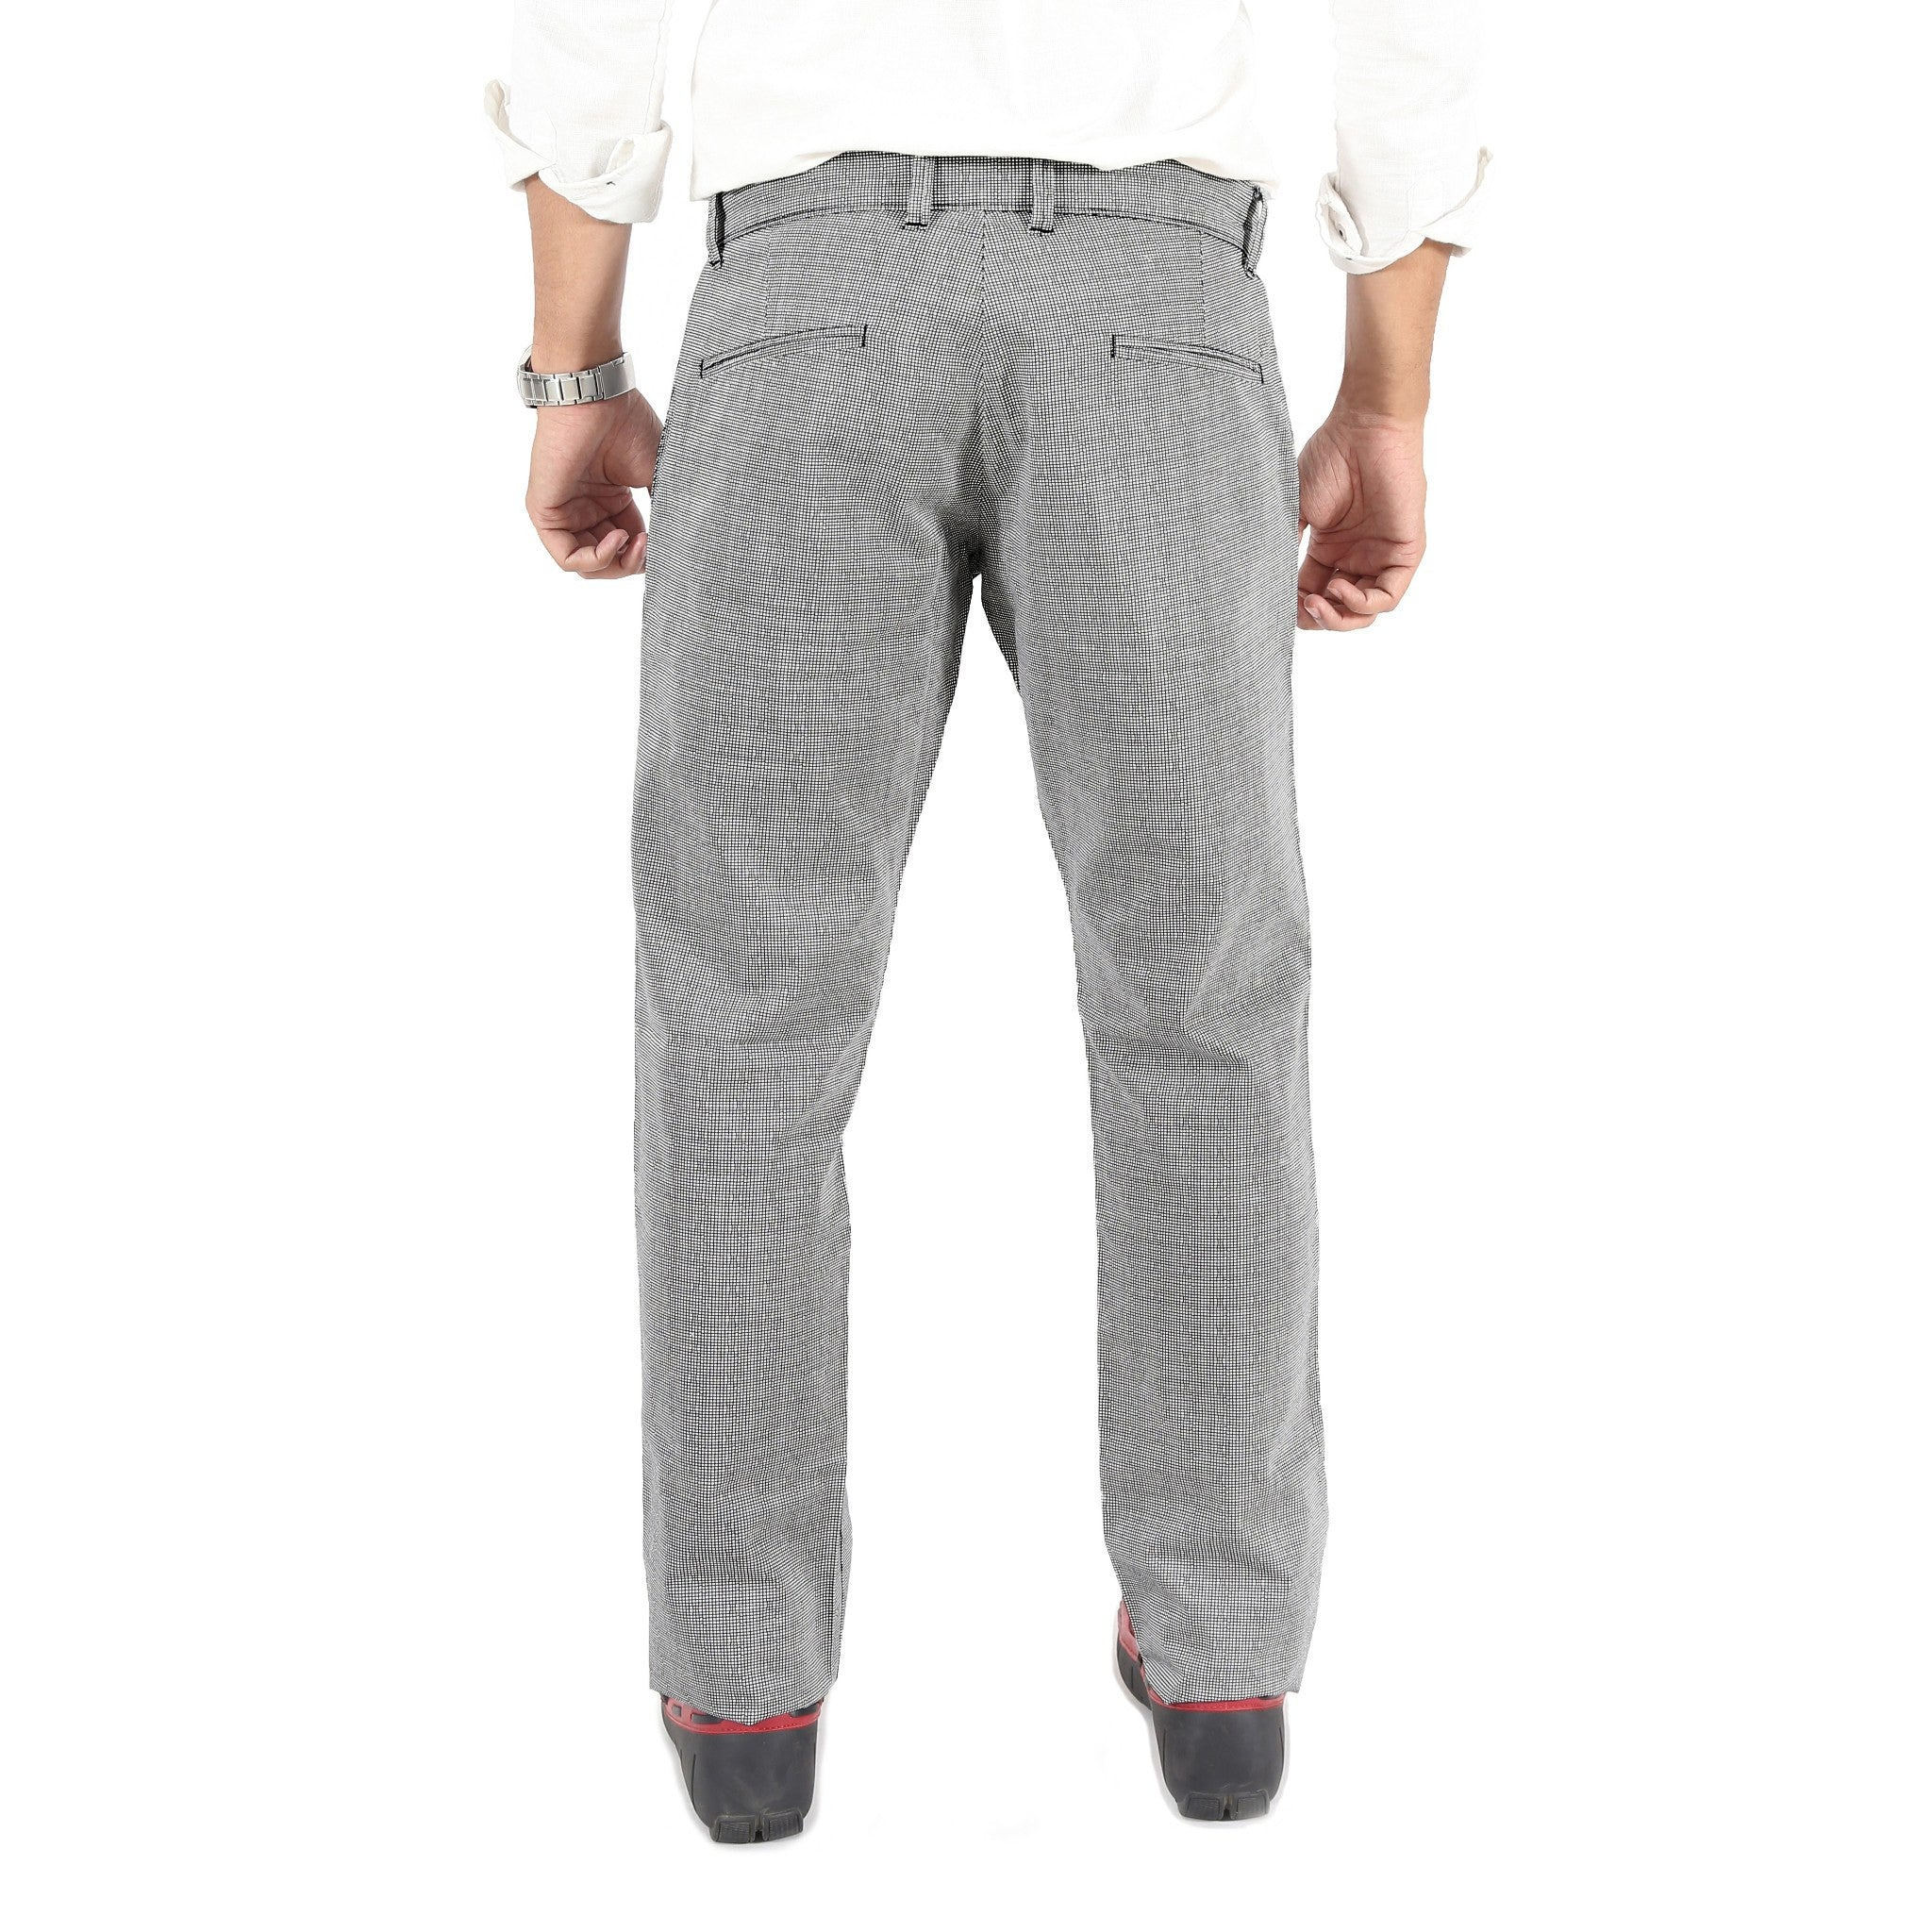 Wavy Grid Checks Trouser By Uber Urban Back